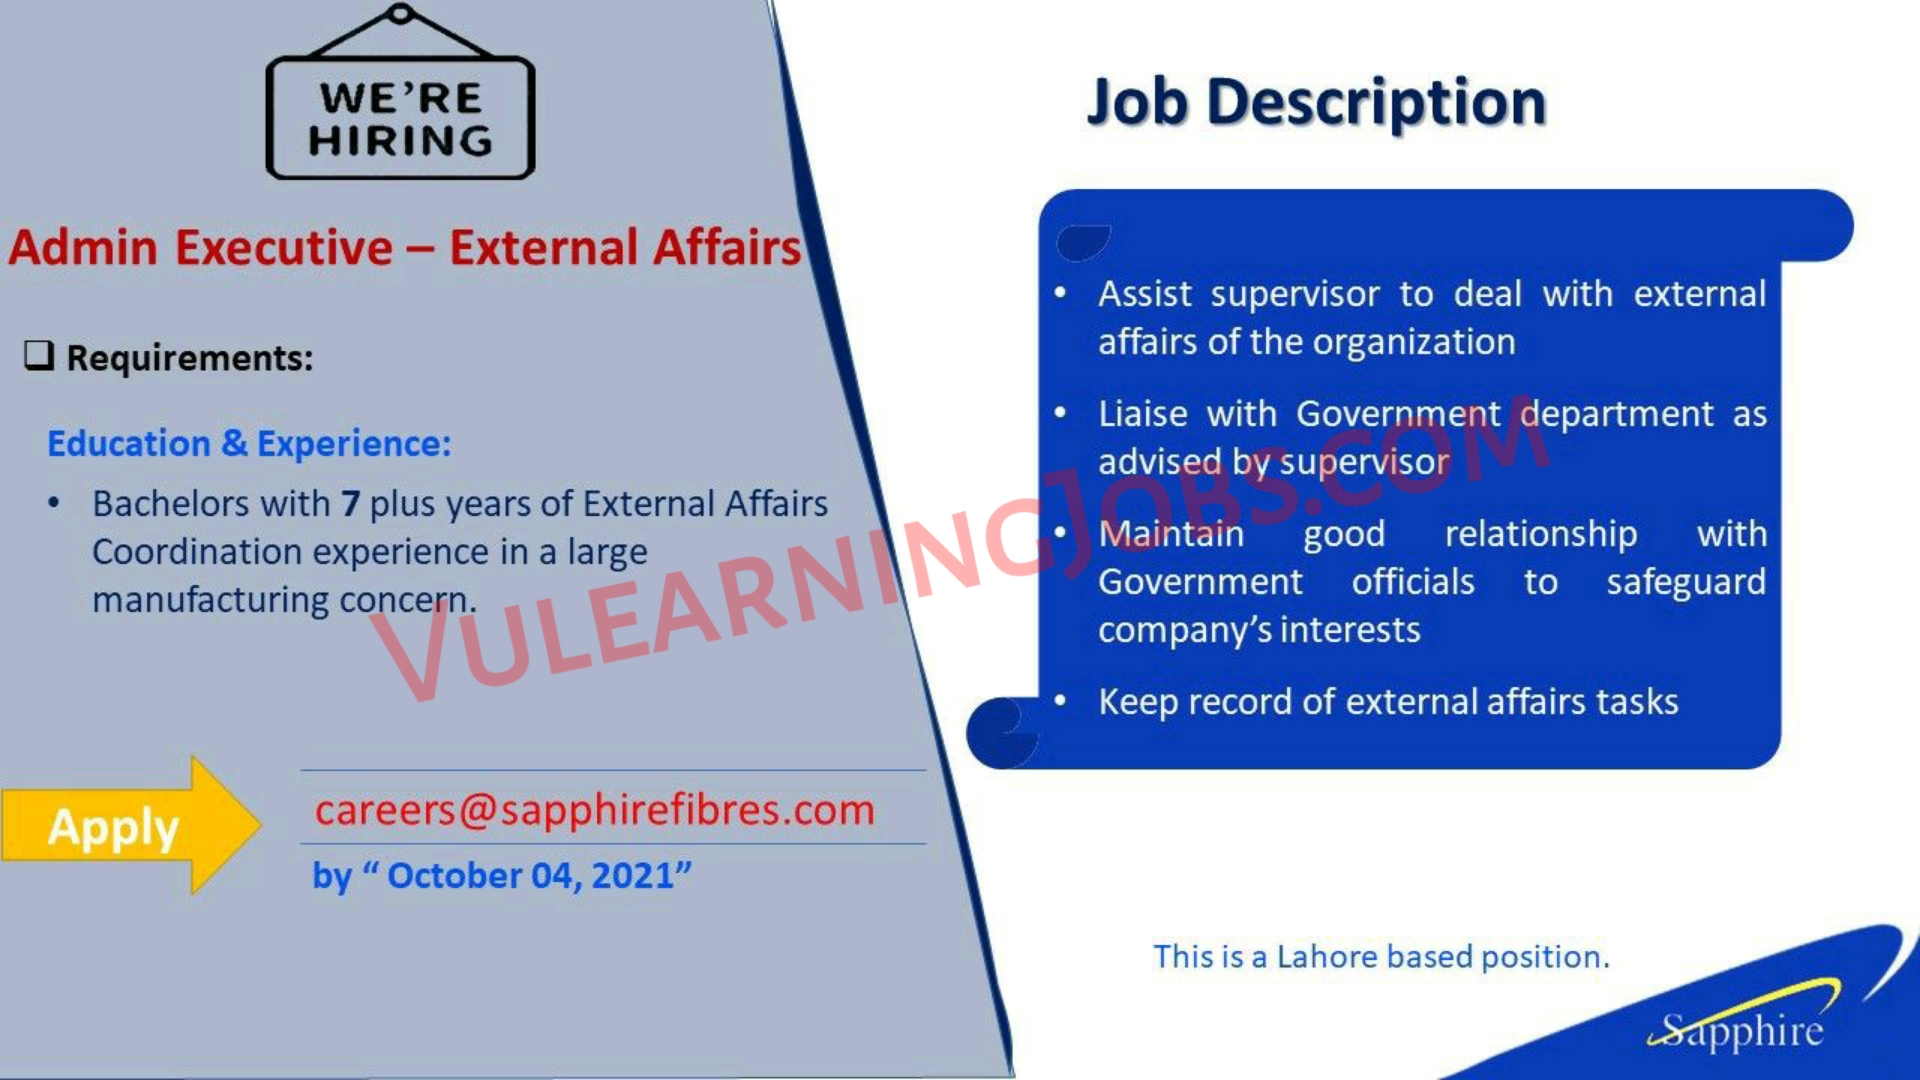 Sapphire Fibres Limited Jobs September 2021 For Admin Executive Latest